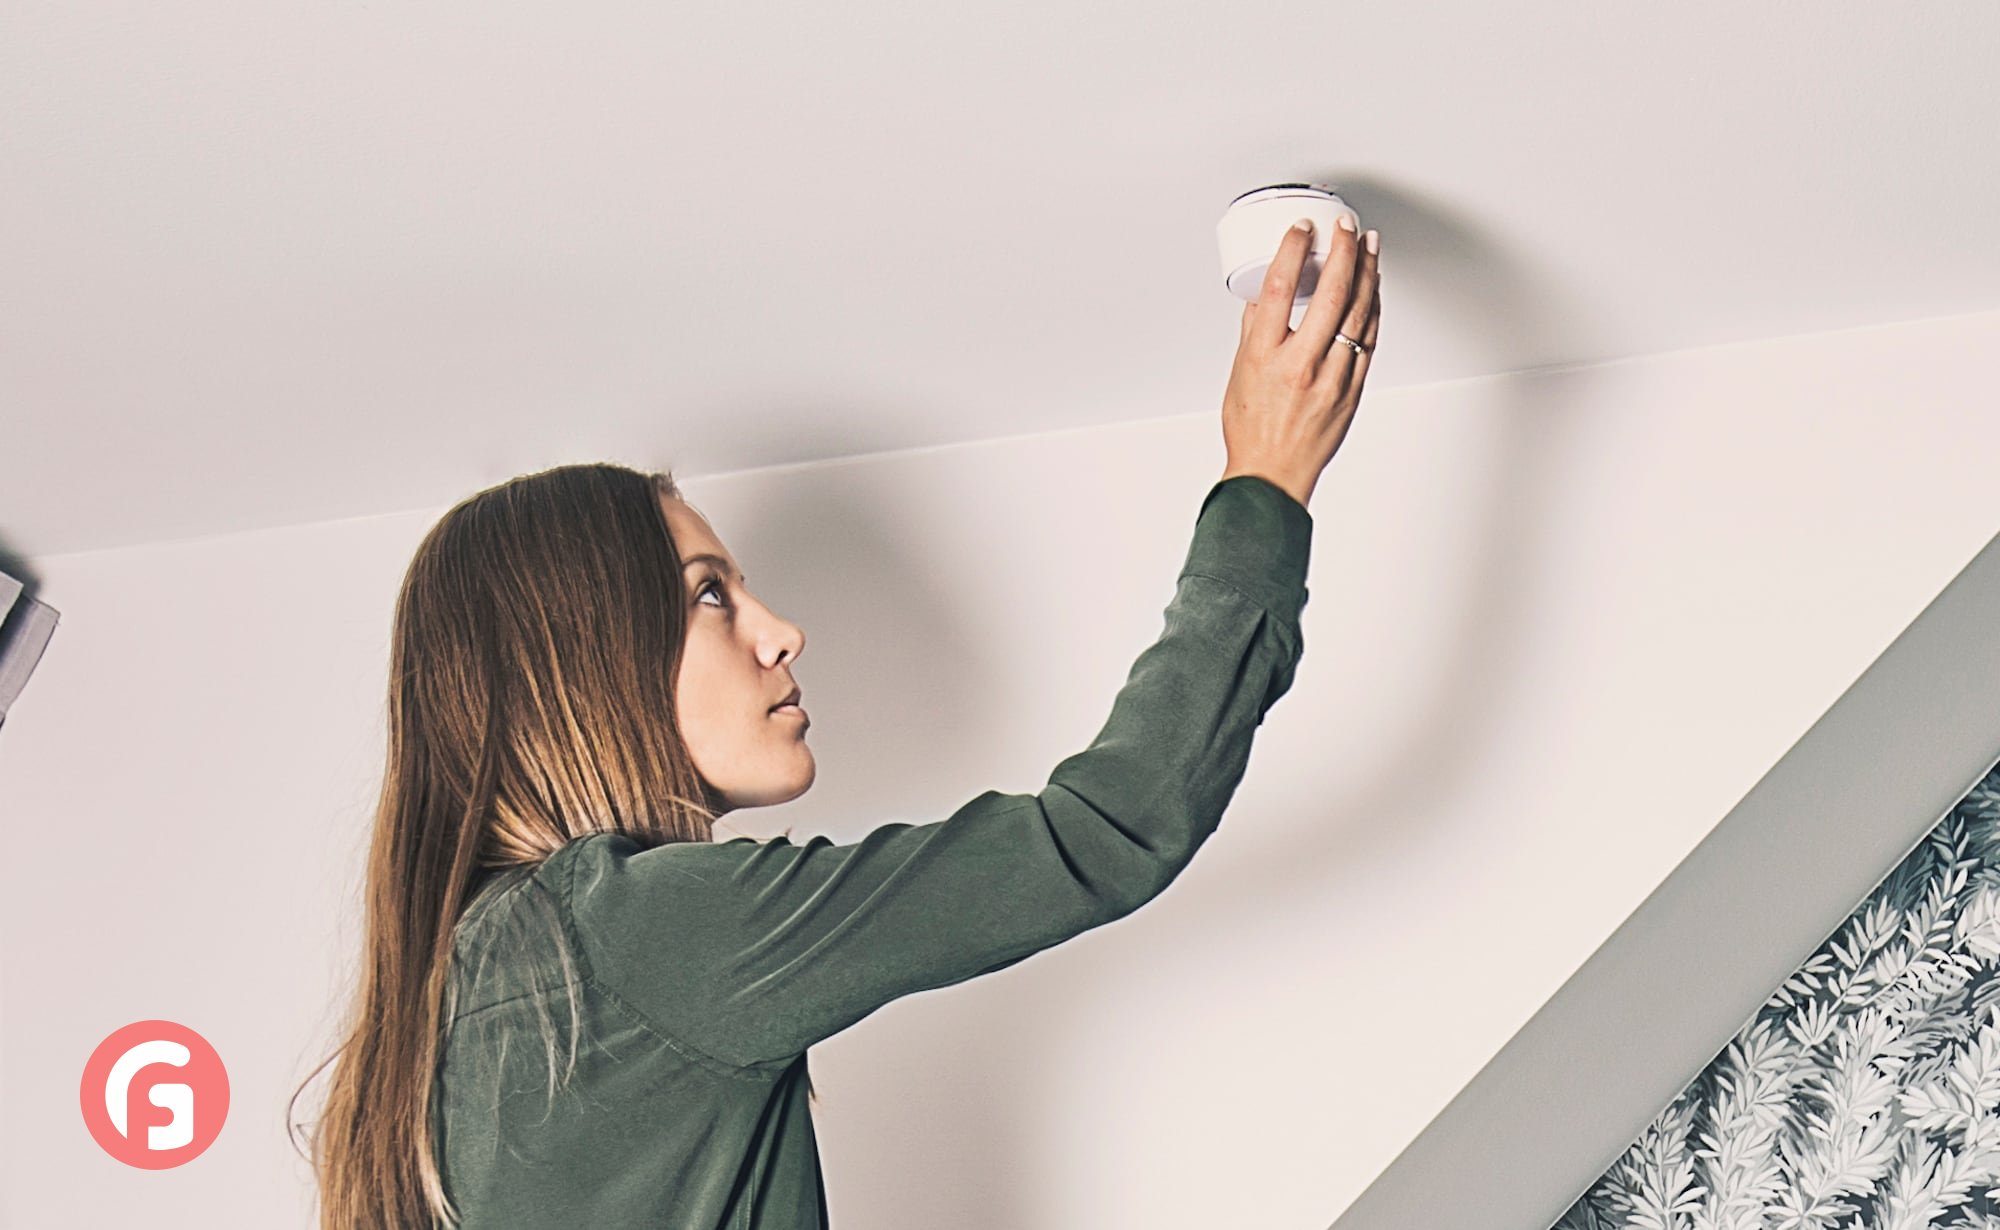 Minut Smart Home Alarm is an all-in-one device that does it all